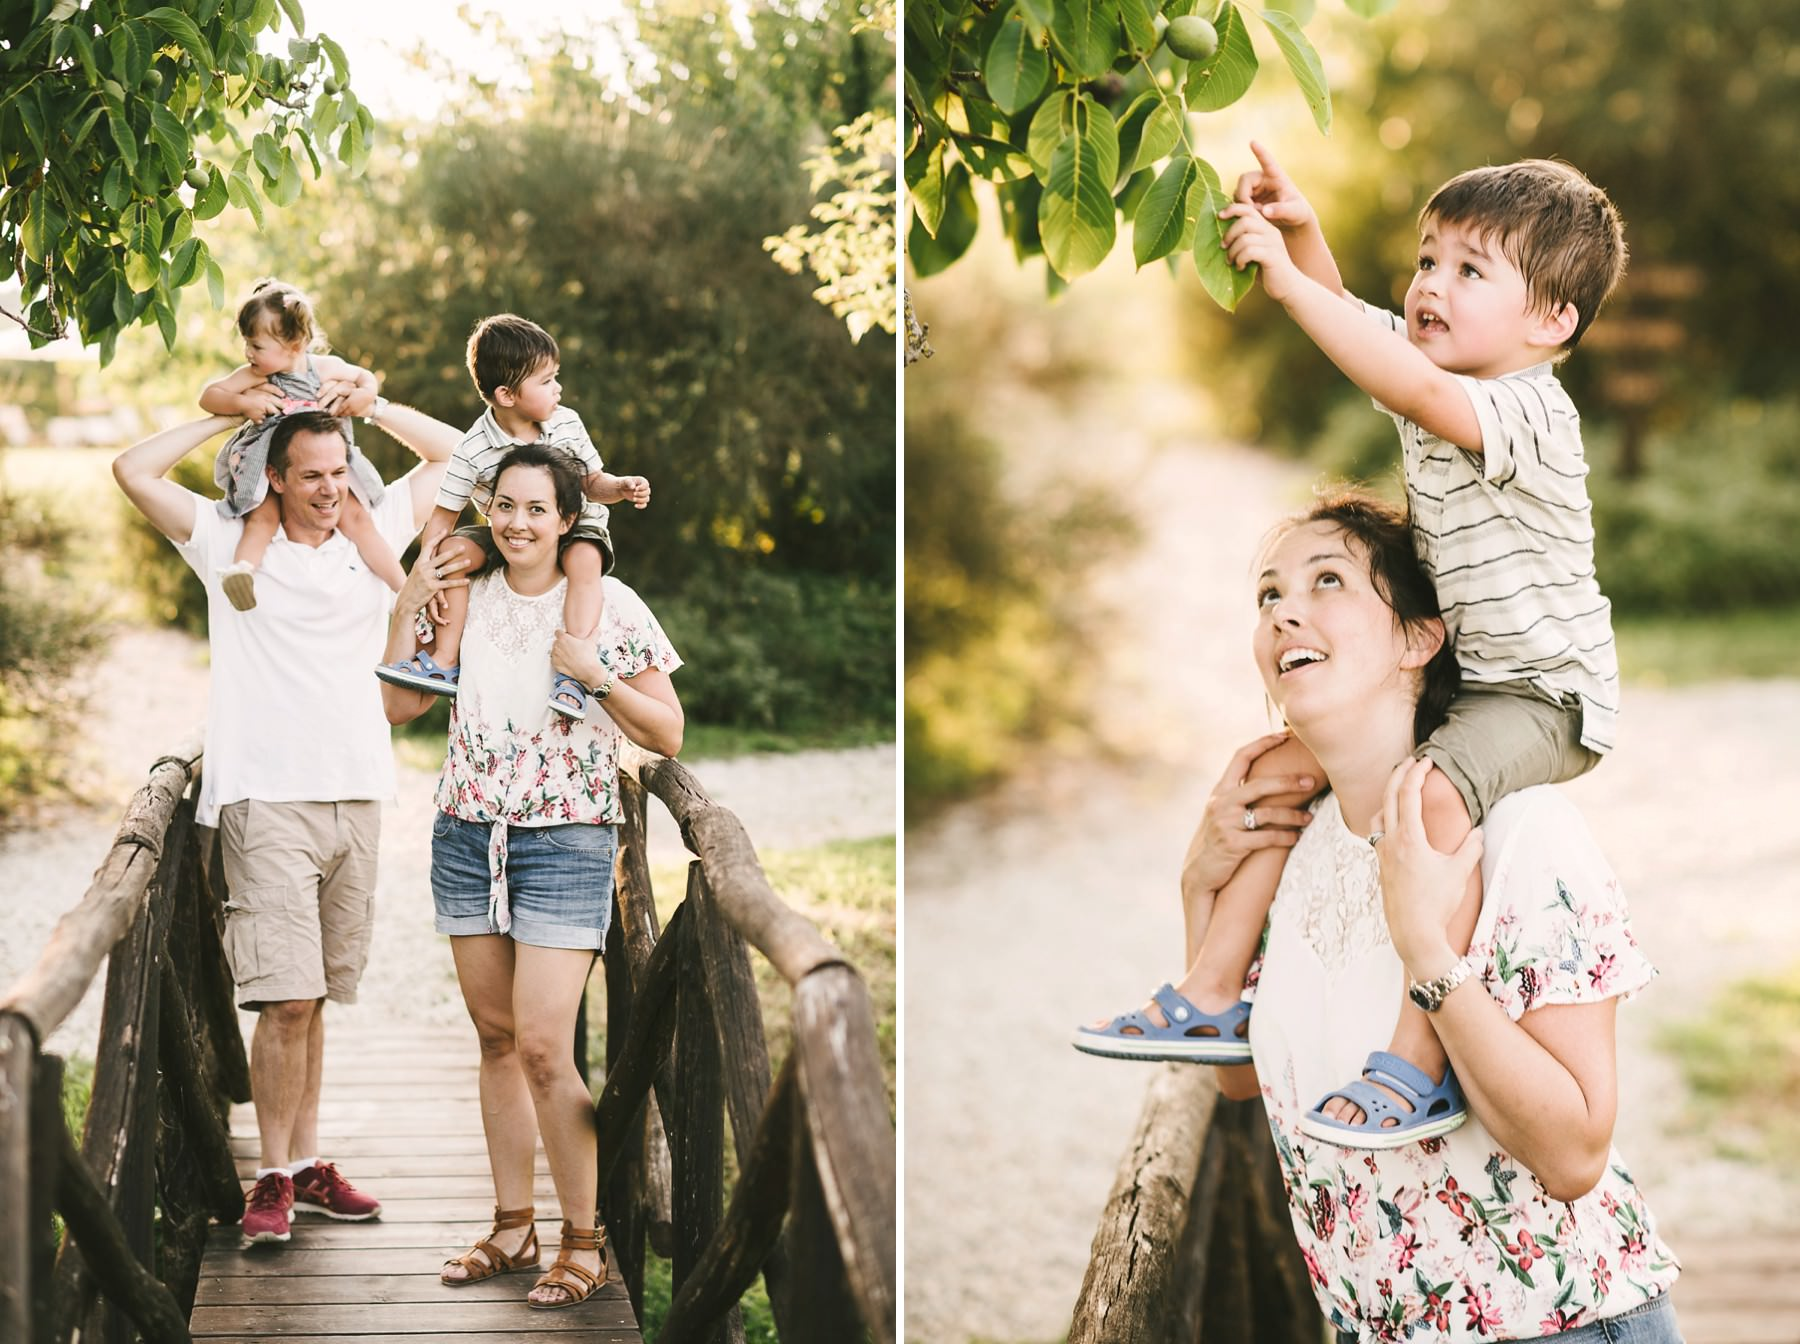 Family photos: stop time with emotional and never ending memories!